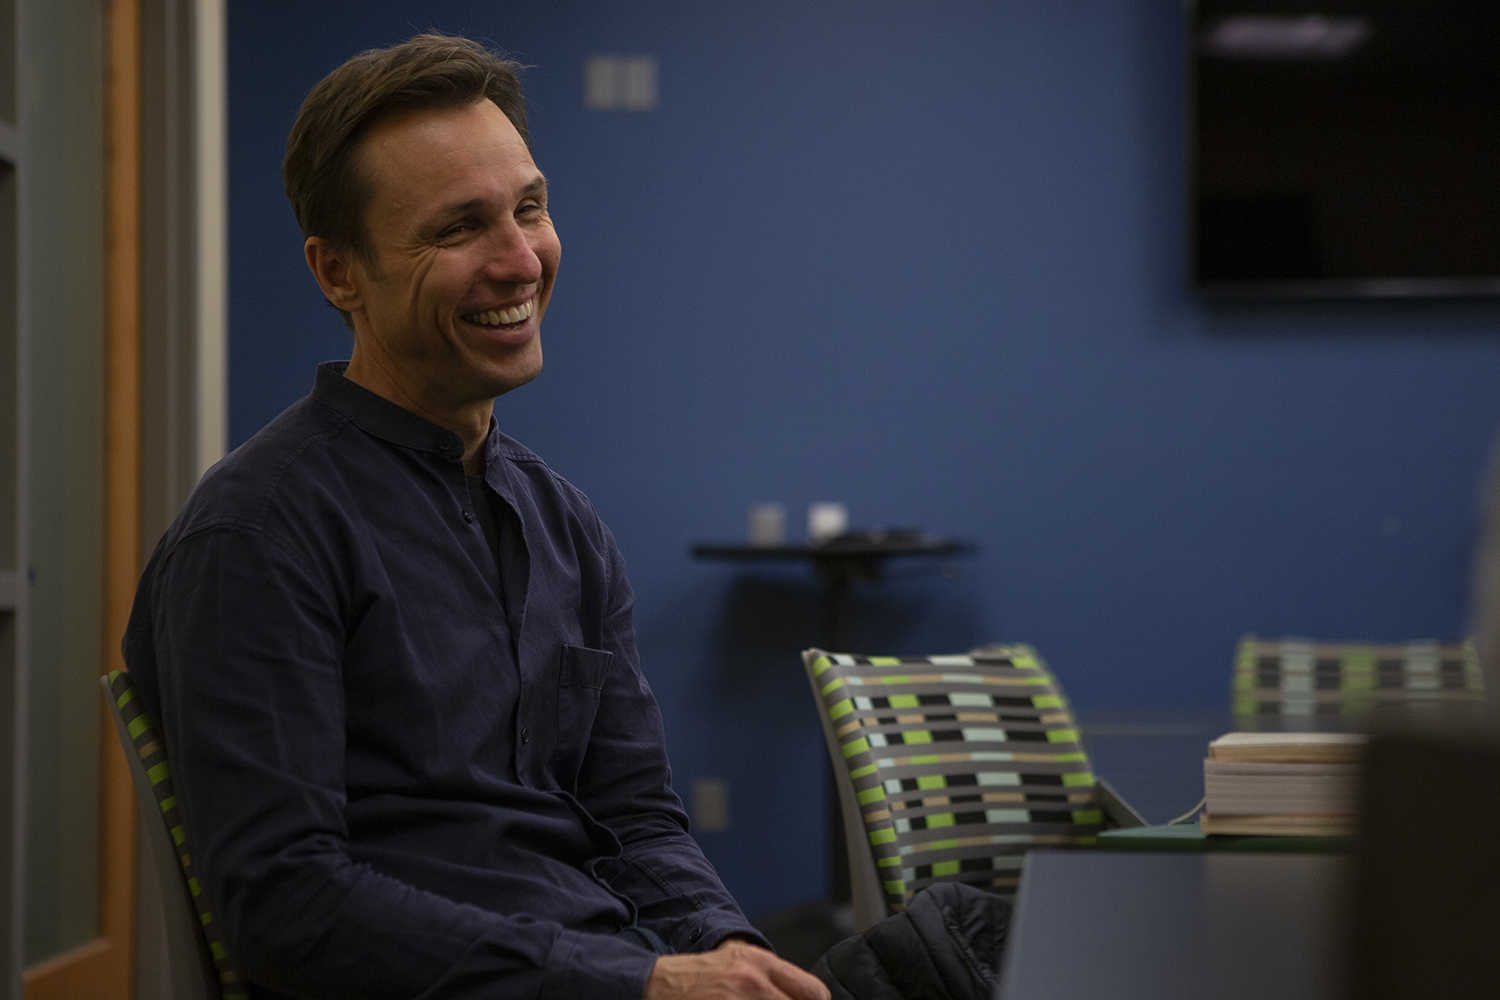 """Author Markus Zusak sits down for an interview with The Daily Iowan in the Iowa City Public Library on Monday, Oct. 21, 2019. Zusak discussed his writing process and his new book """"Bridge of Clay."""" Around 250 people attended his reading."""